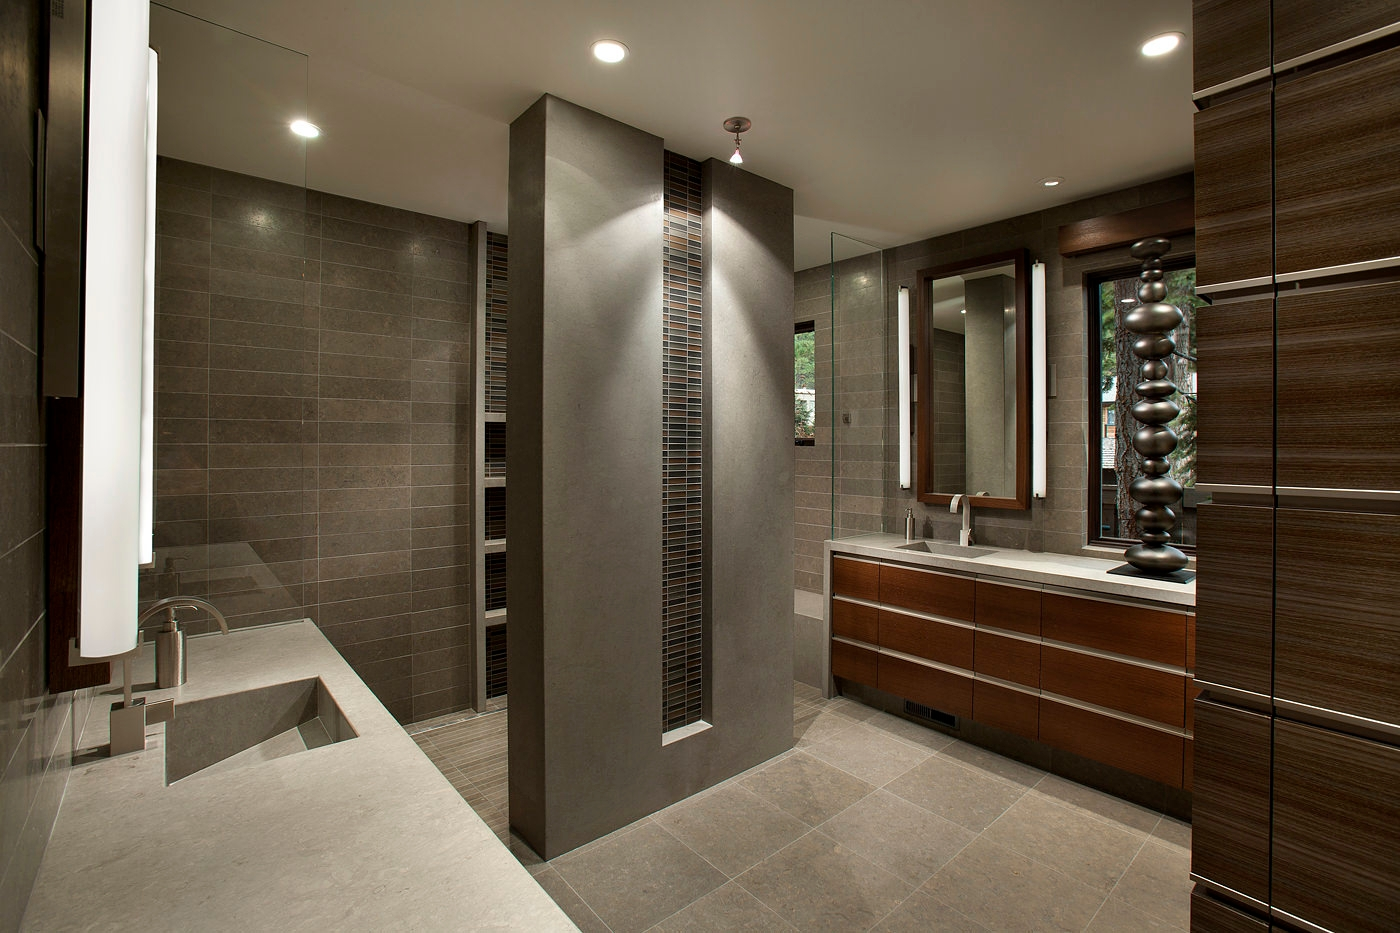 Master Bathroom Designs 2016 20+ master bathroom remodeling designs, decorating ideas | design